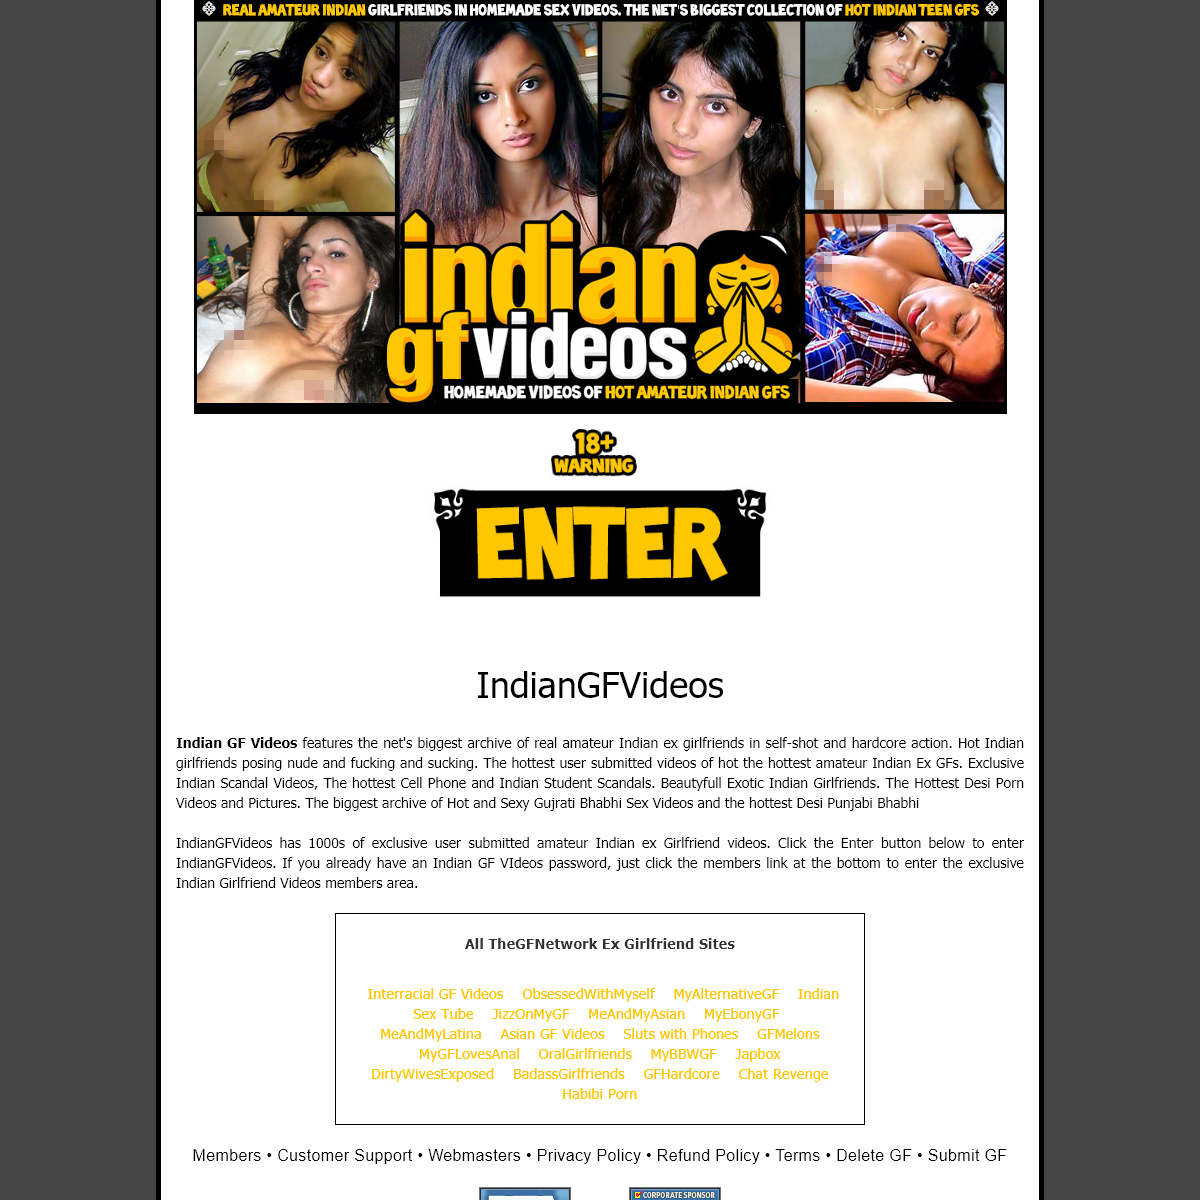 A complete backup of www.www.indiangfvideos.com